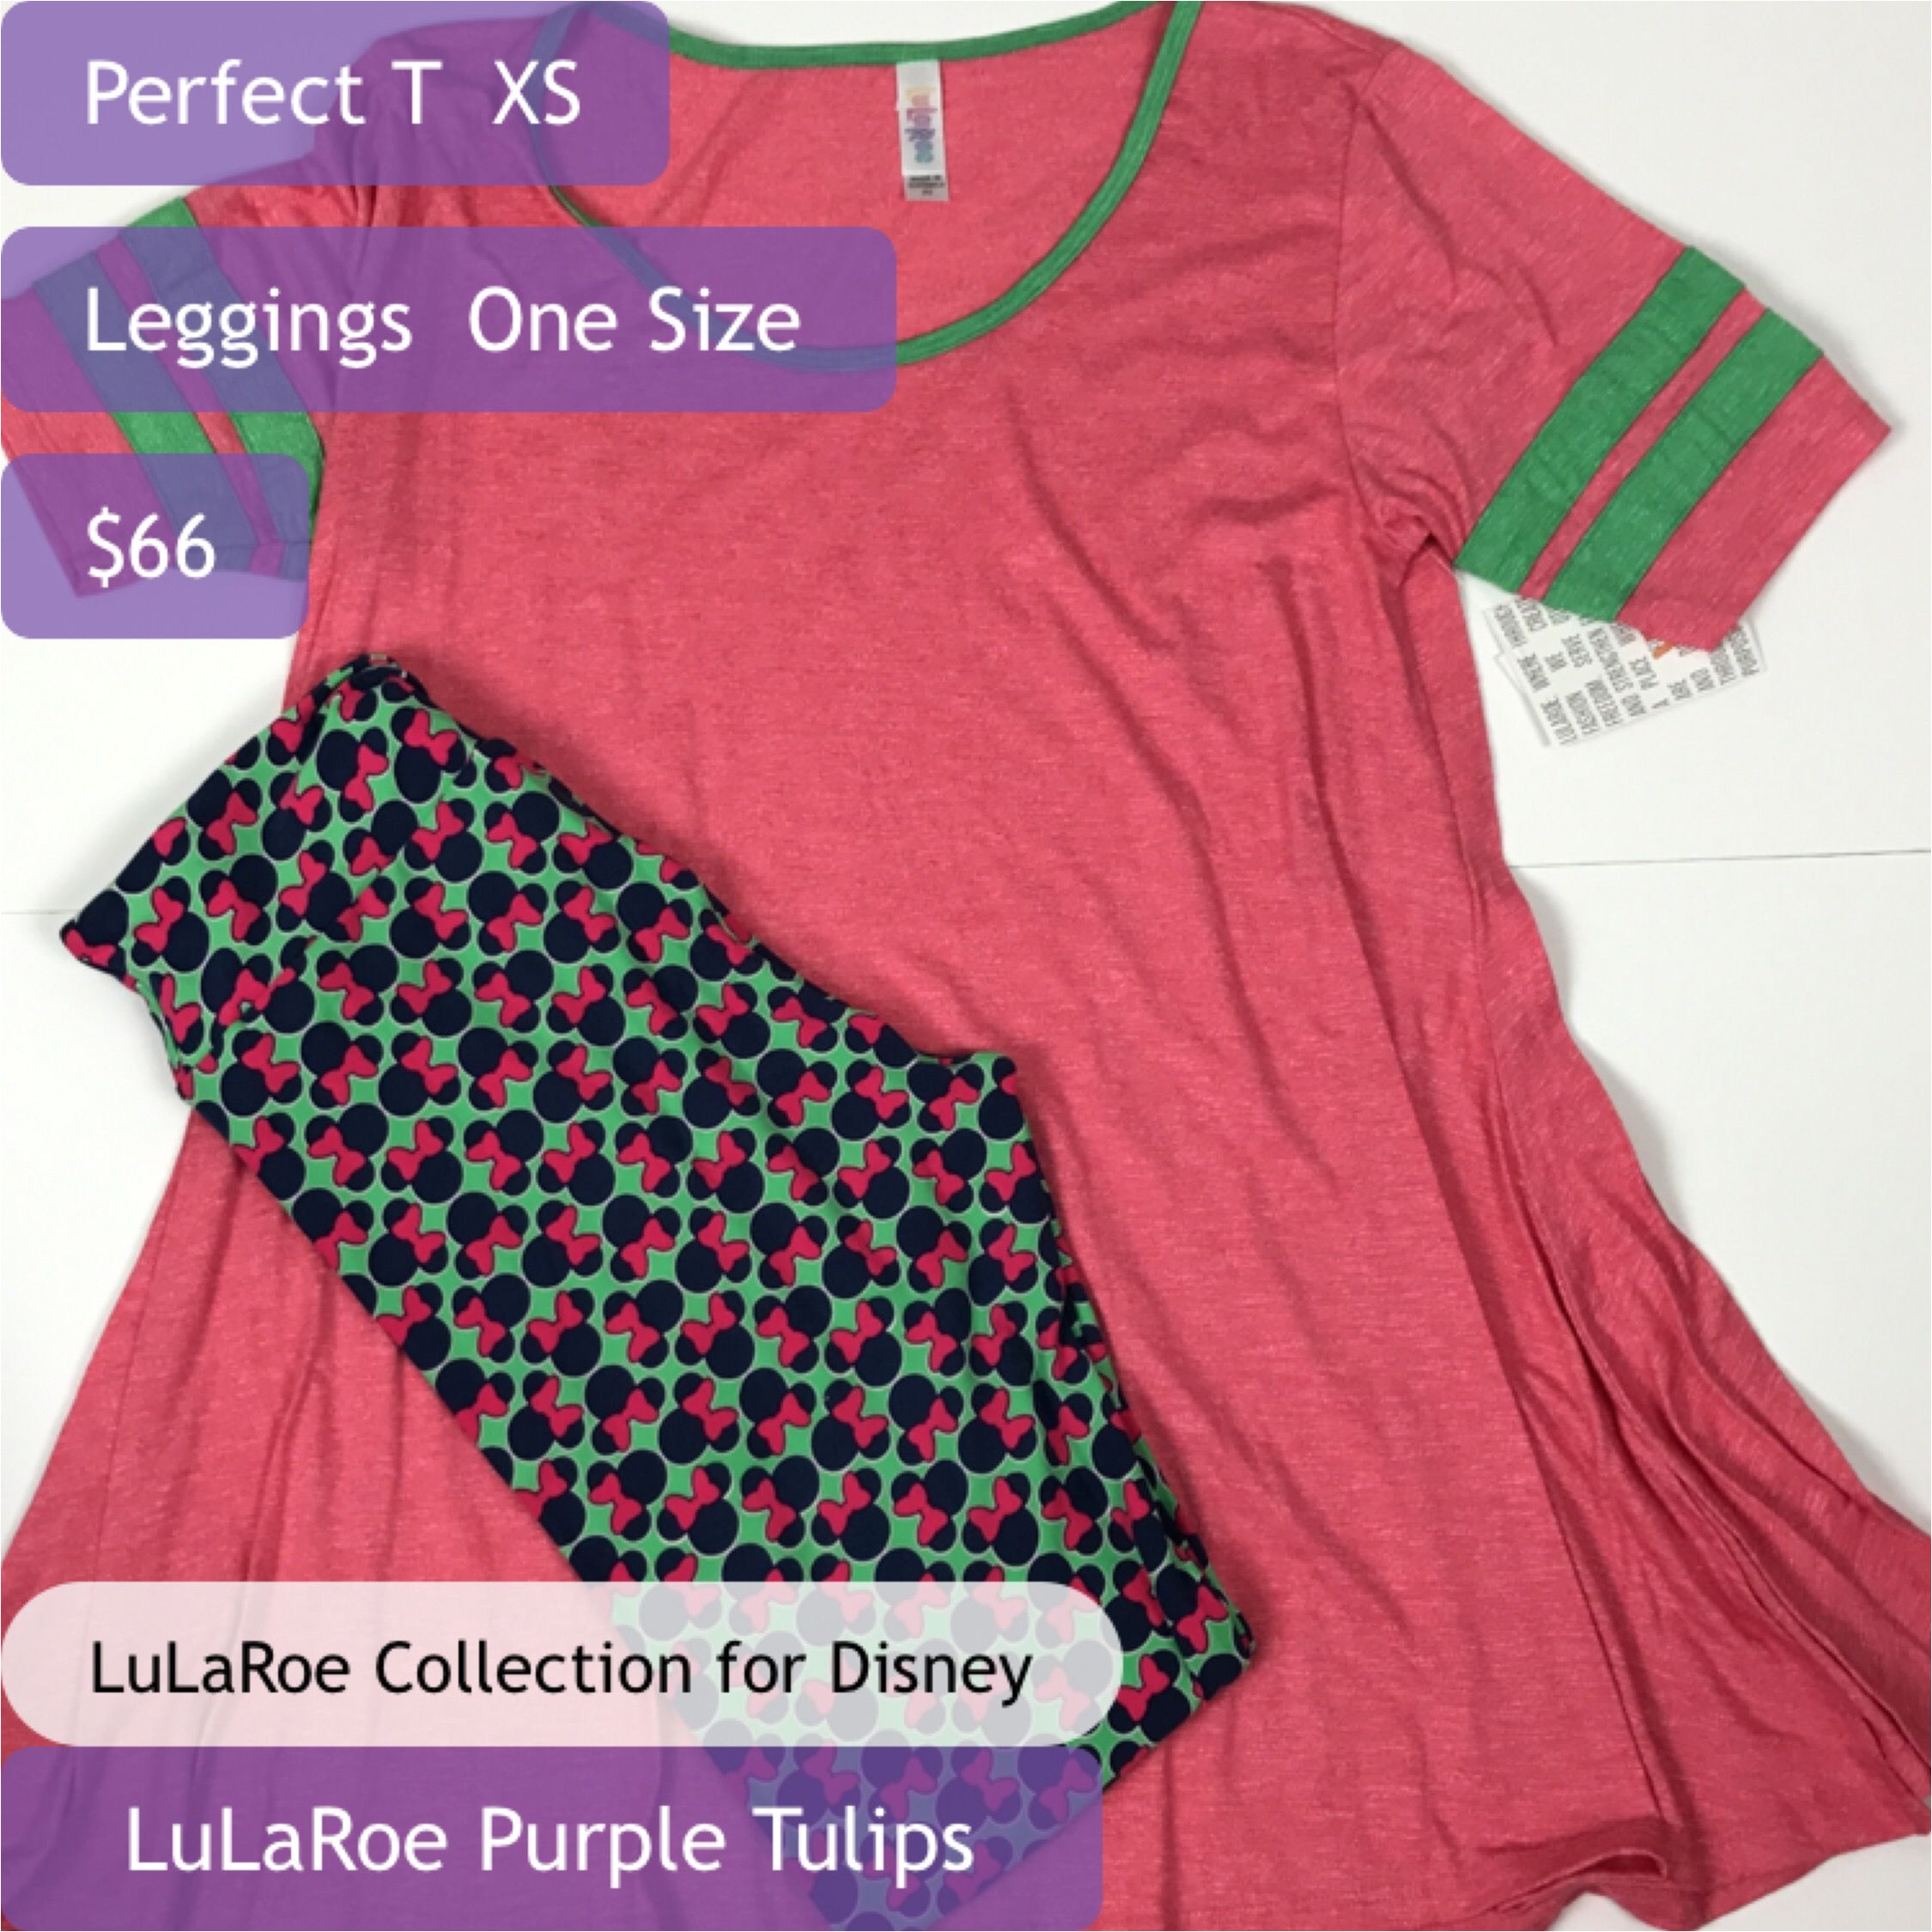 Lularoe Perfect T Price Facebook Com Groups Purpletulips Lularoe Collection for Disney